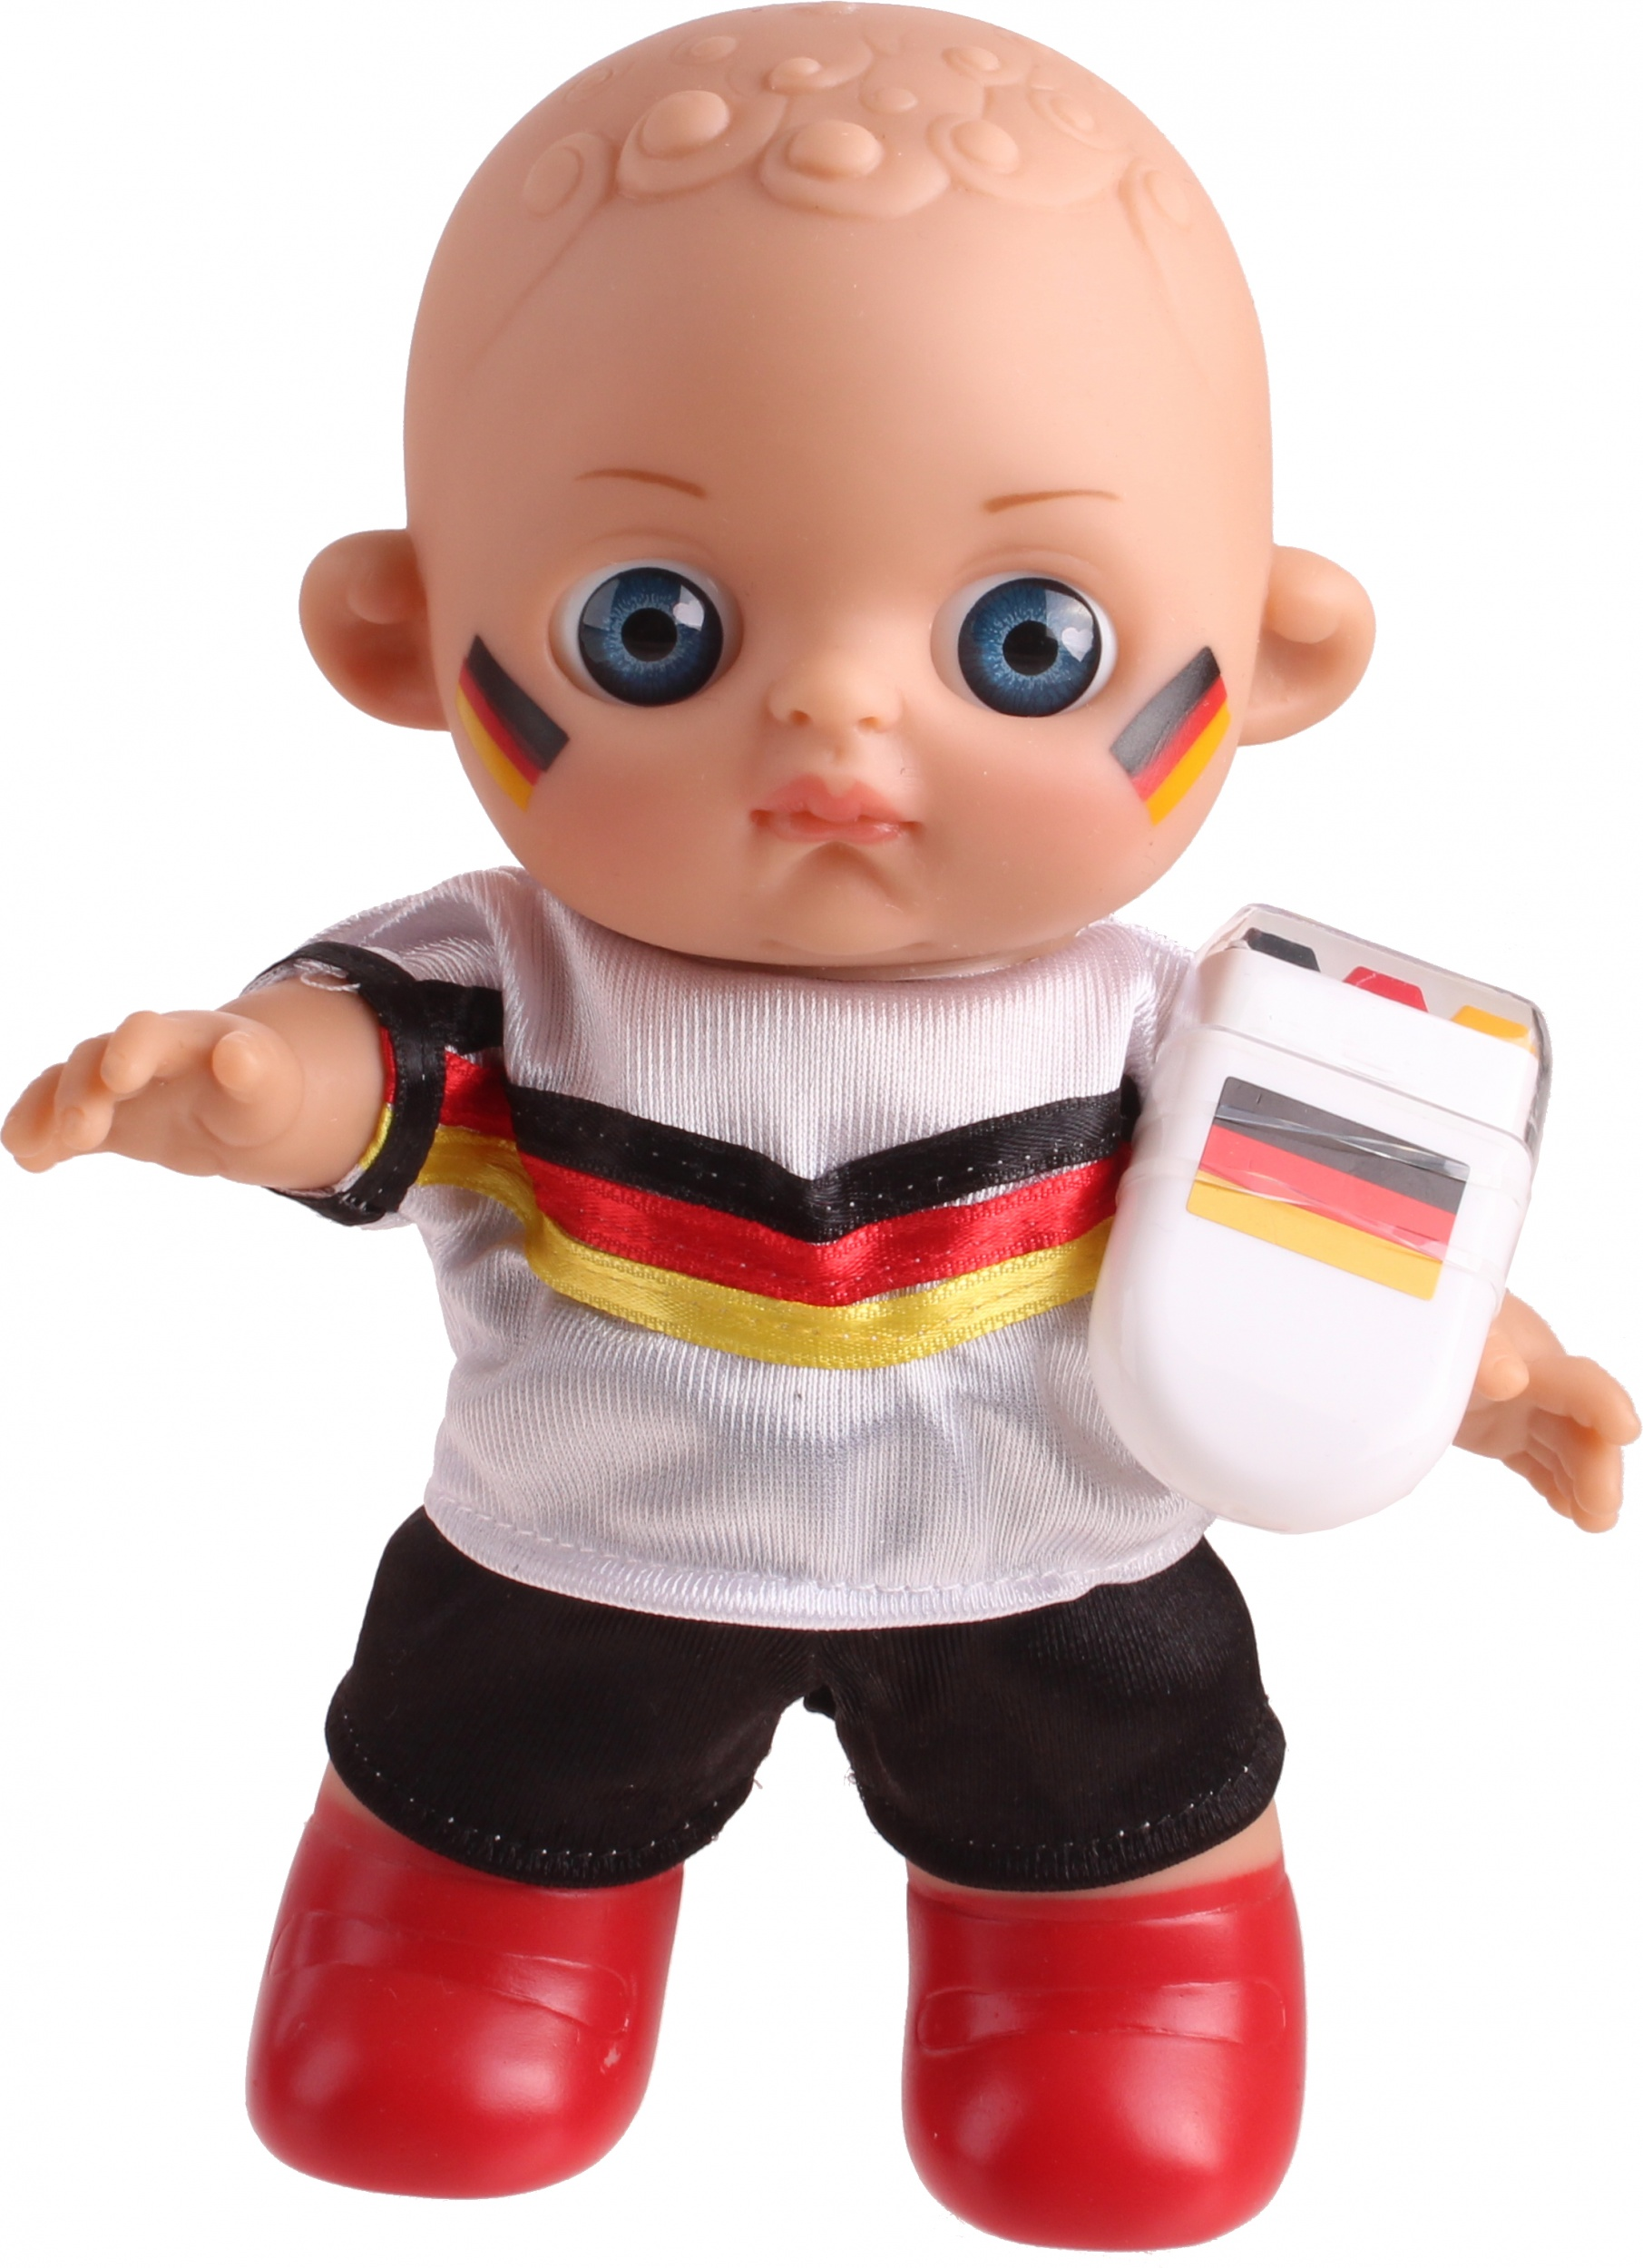 Falca Football Baby Doll With Makeup Duitsland20 Cm Twm Tom Wholesale Management